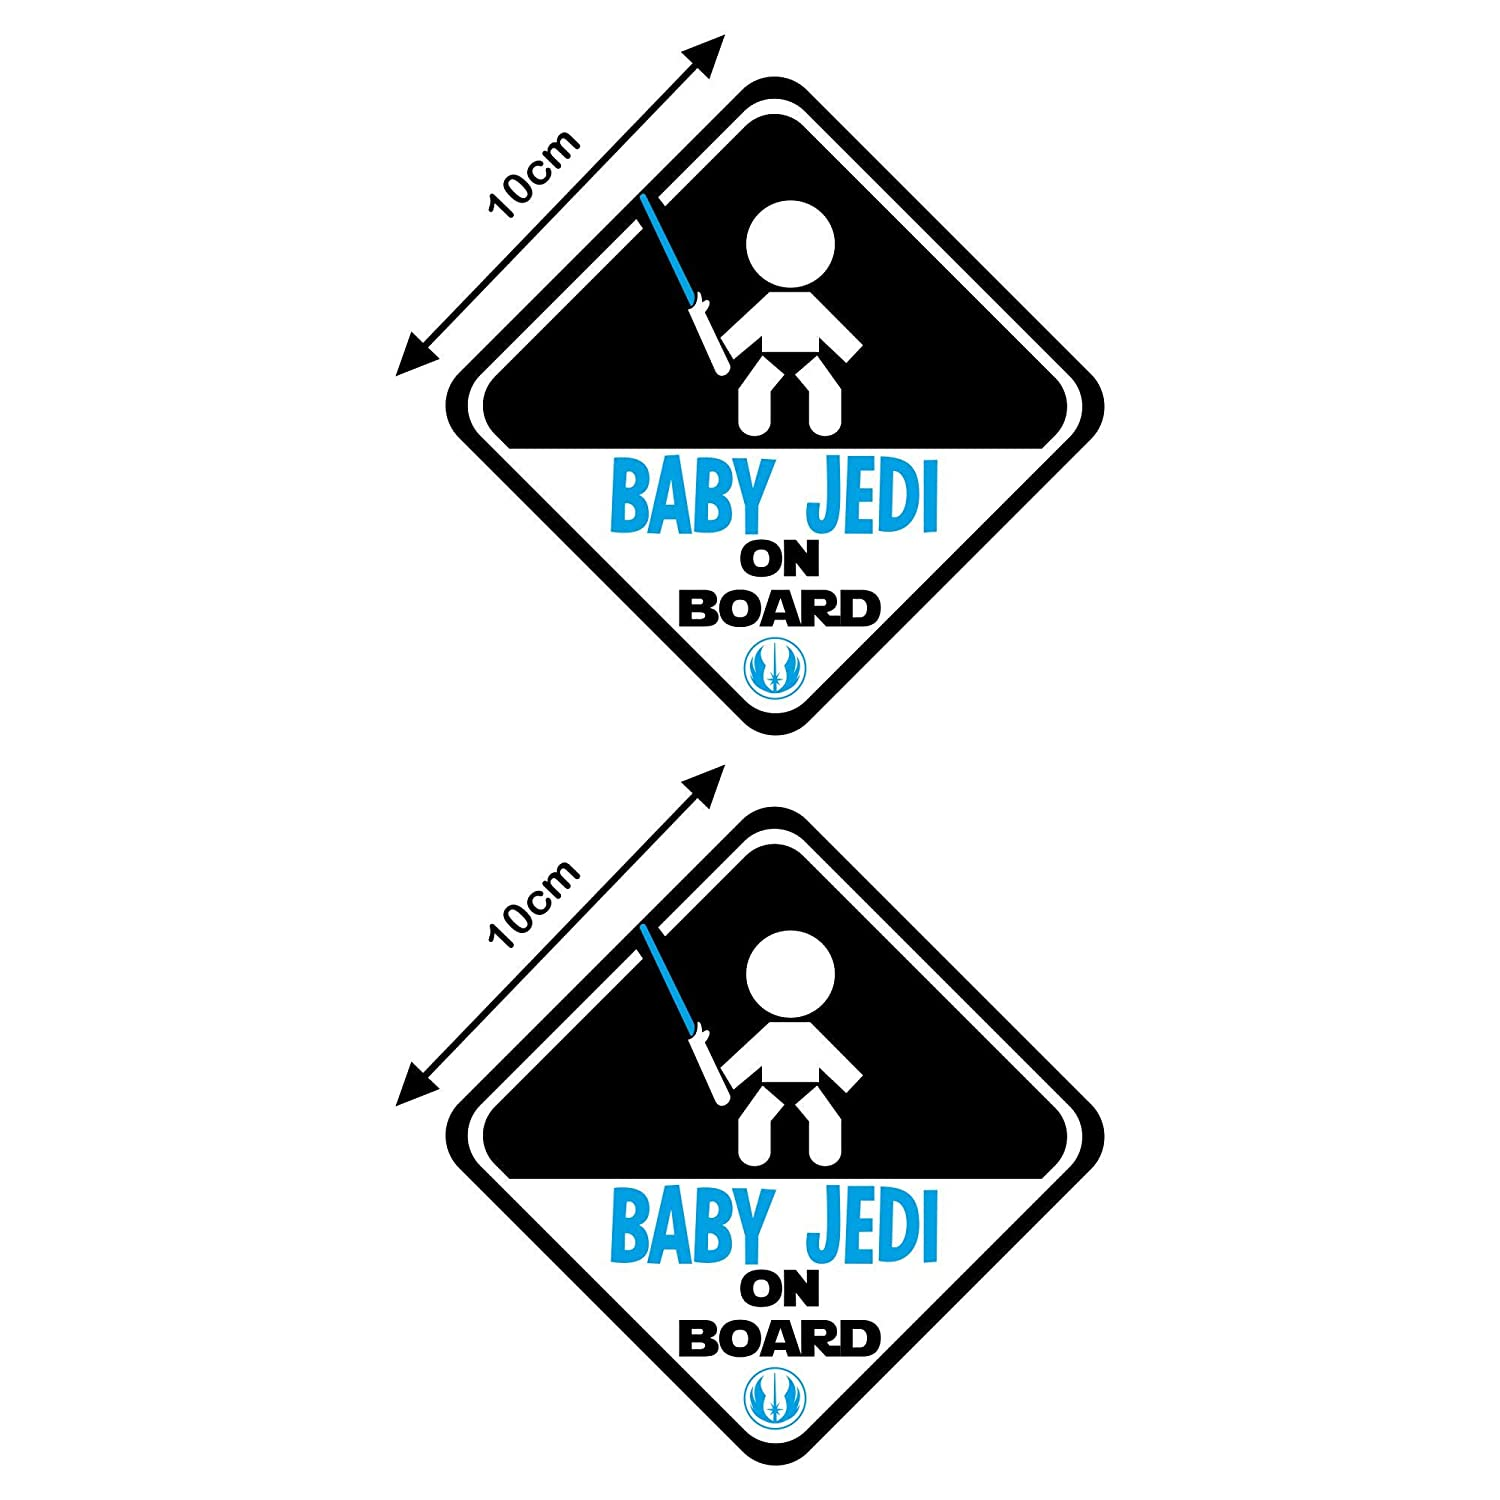 Autodomy Stickers Baby Jedi Child Star Wars Baby On Board Baby on Board Baby in Car Pack of 2 Units for Car (External Use) Uso Interno